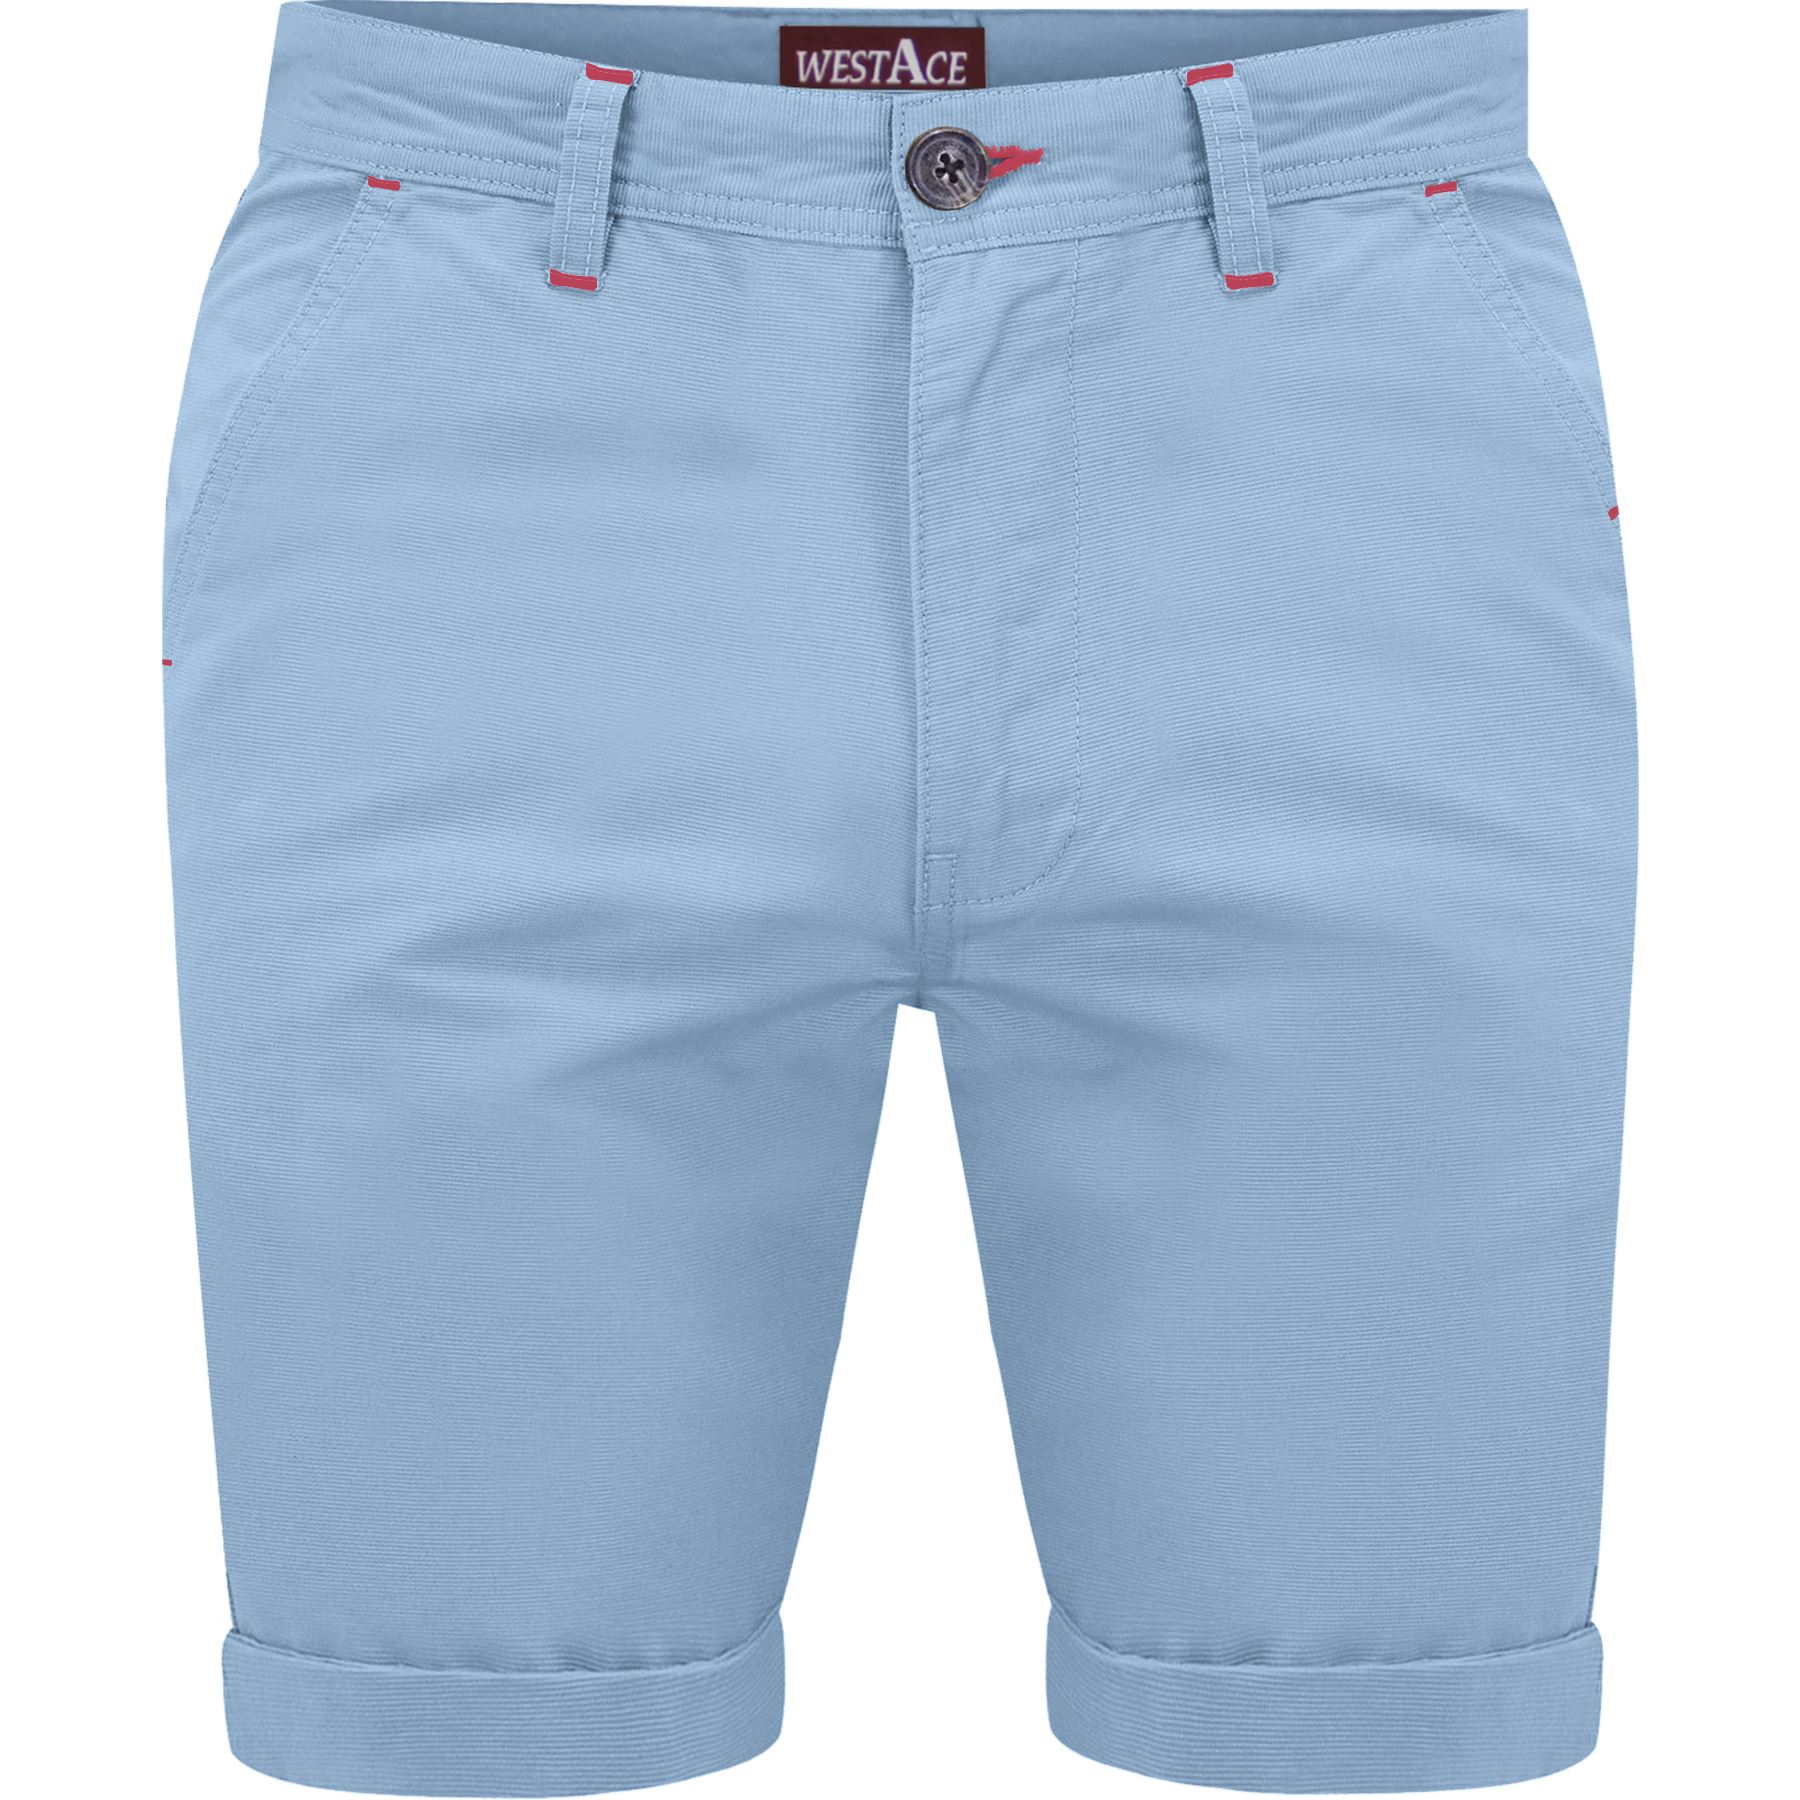 28fdbe87 Details about New Mens Chino Shorts Cotton Combat Half Pant Casual Summer  Cargo Jeans Casual